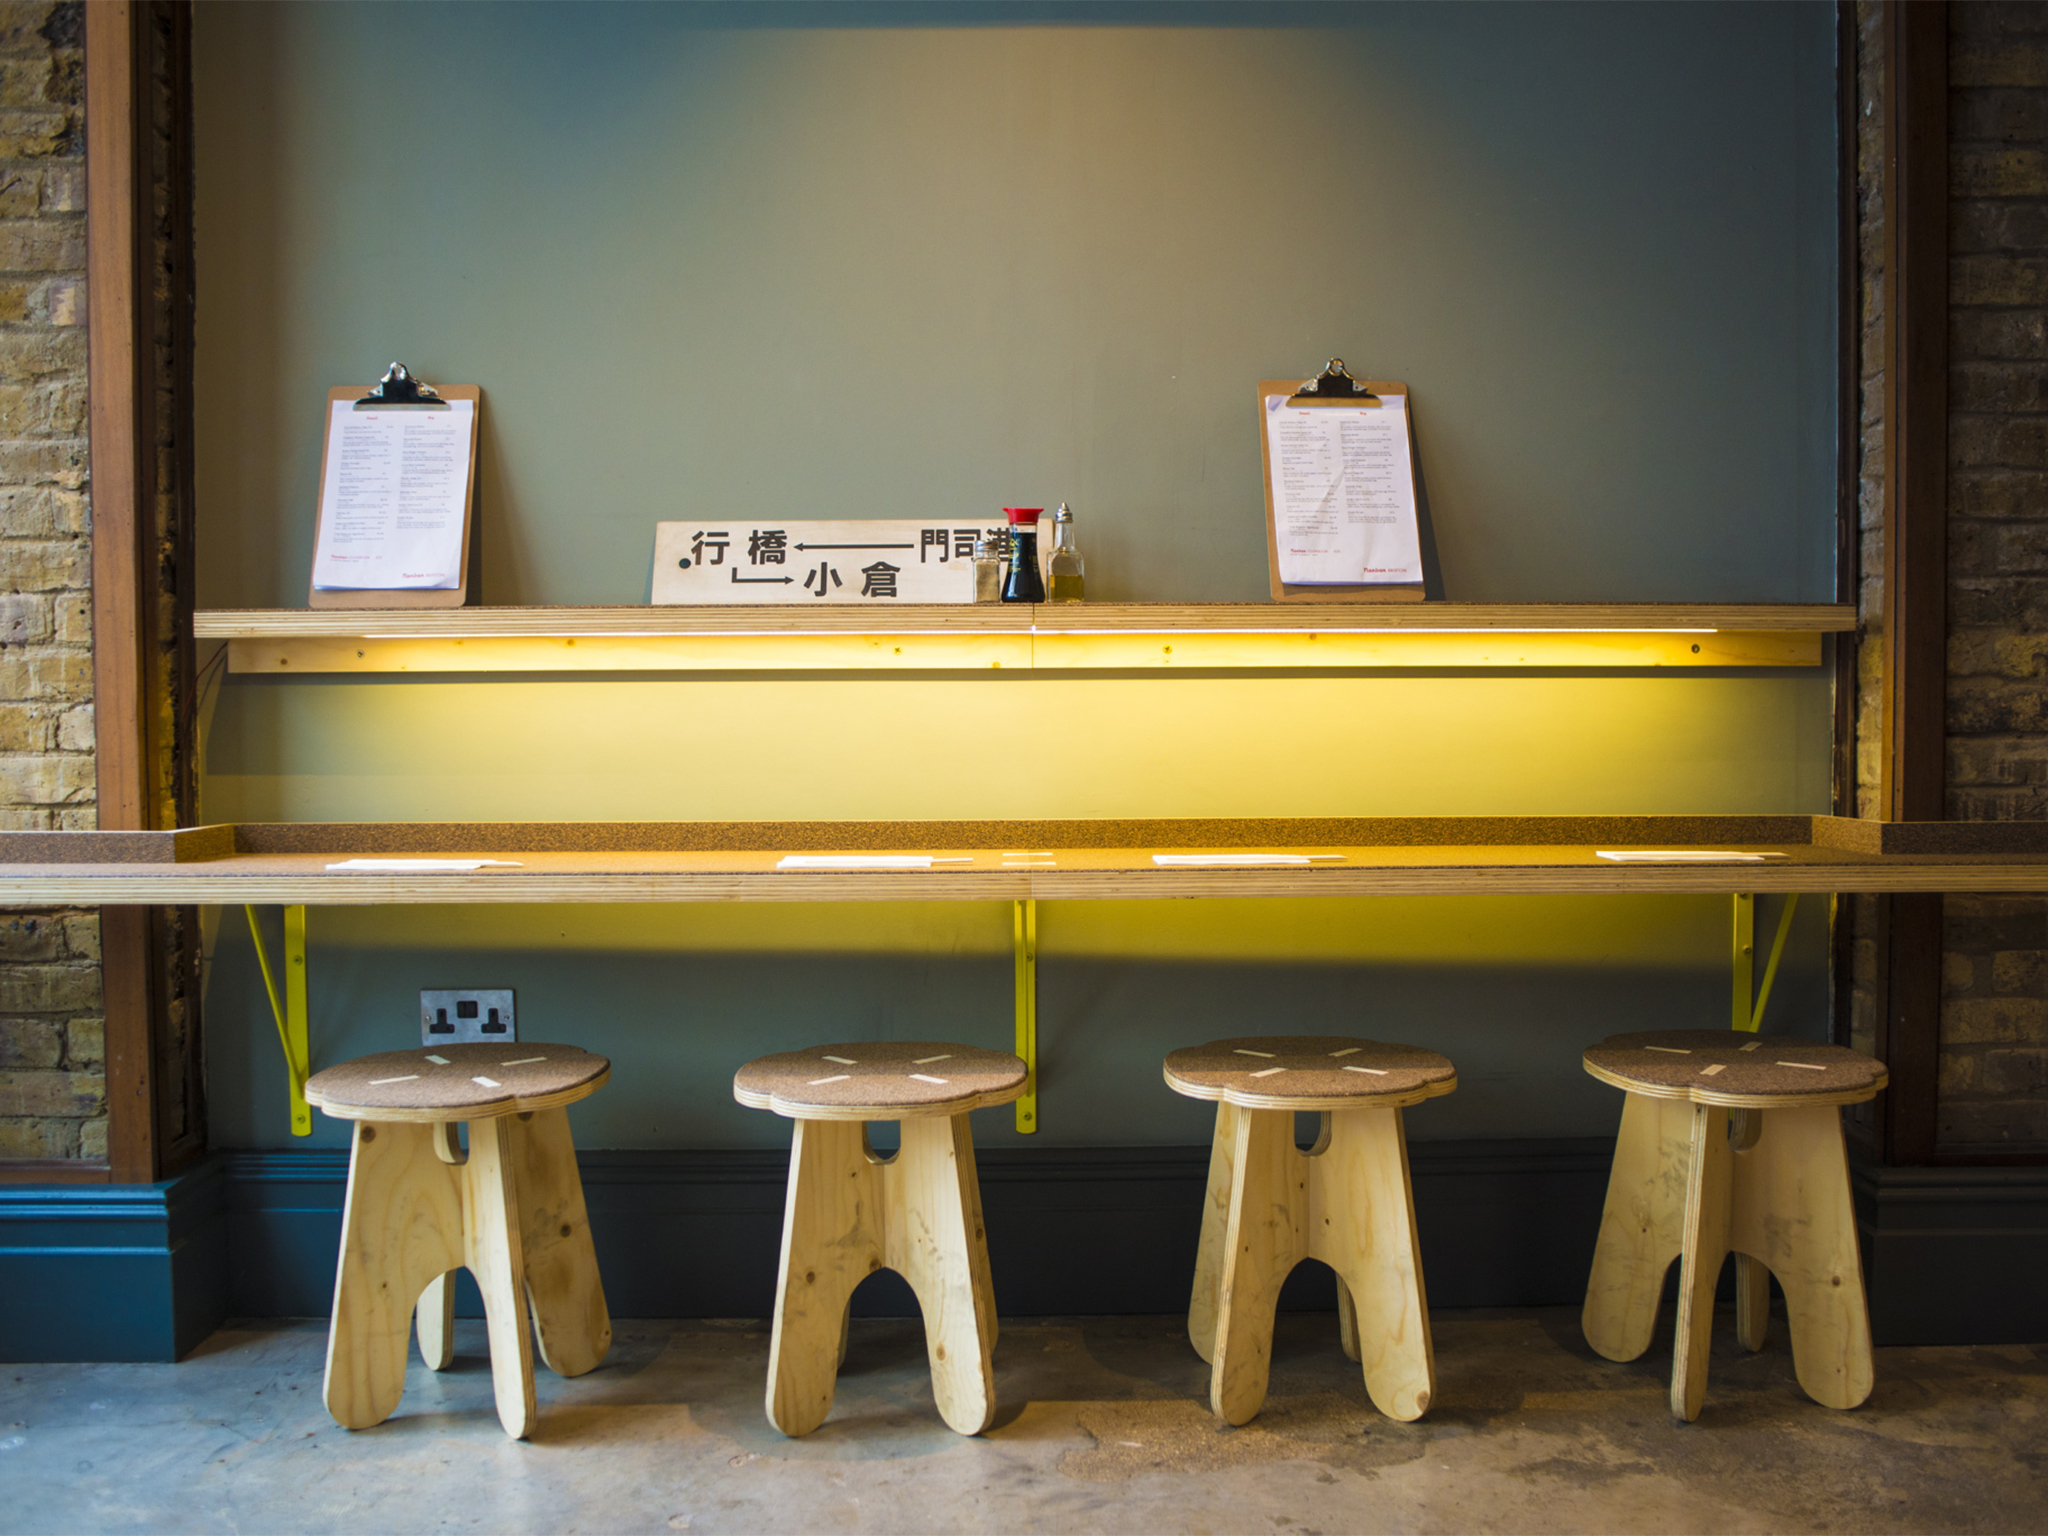 Nanban, 426 Coldharbour Lane, Brixton, London SW9 8LF. Photography by Jamie Lau for Time Out